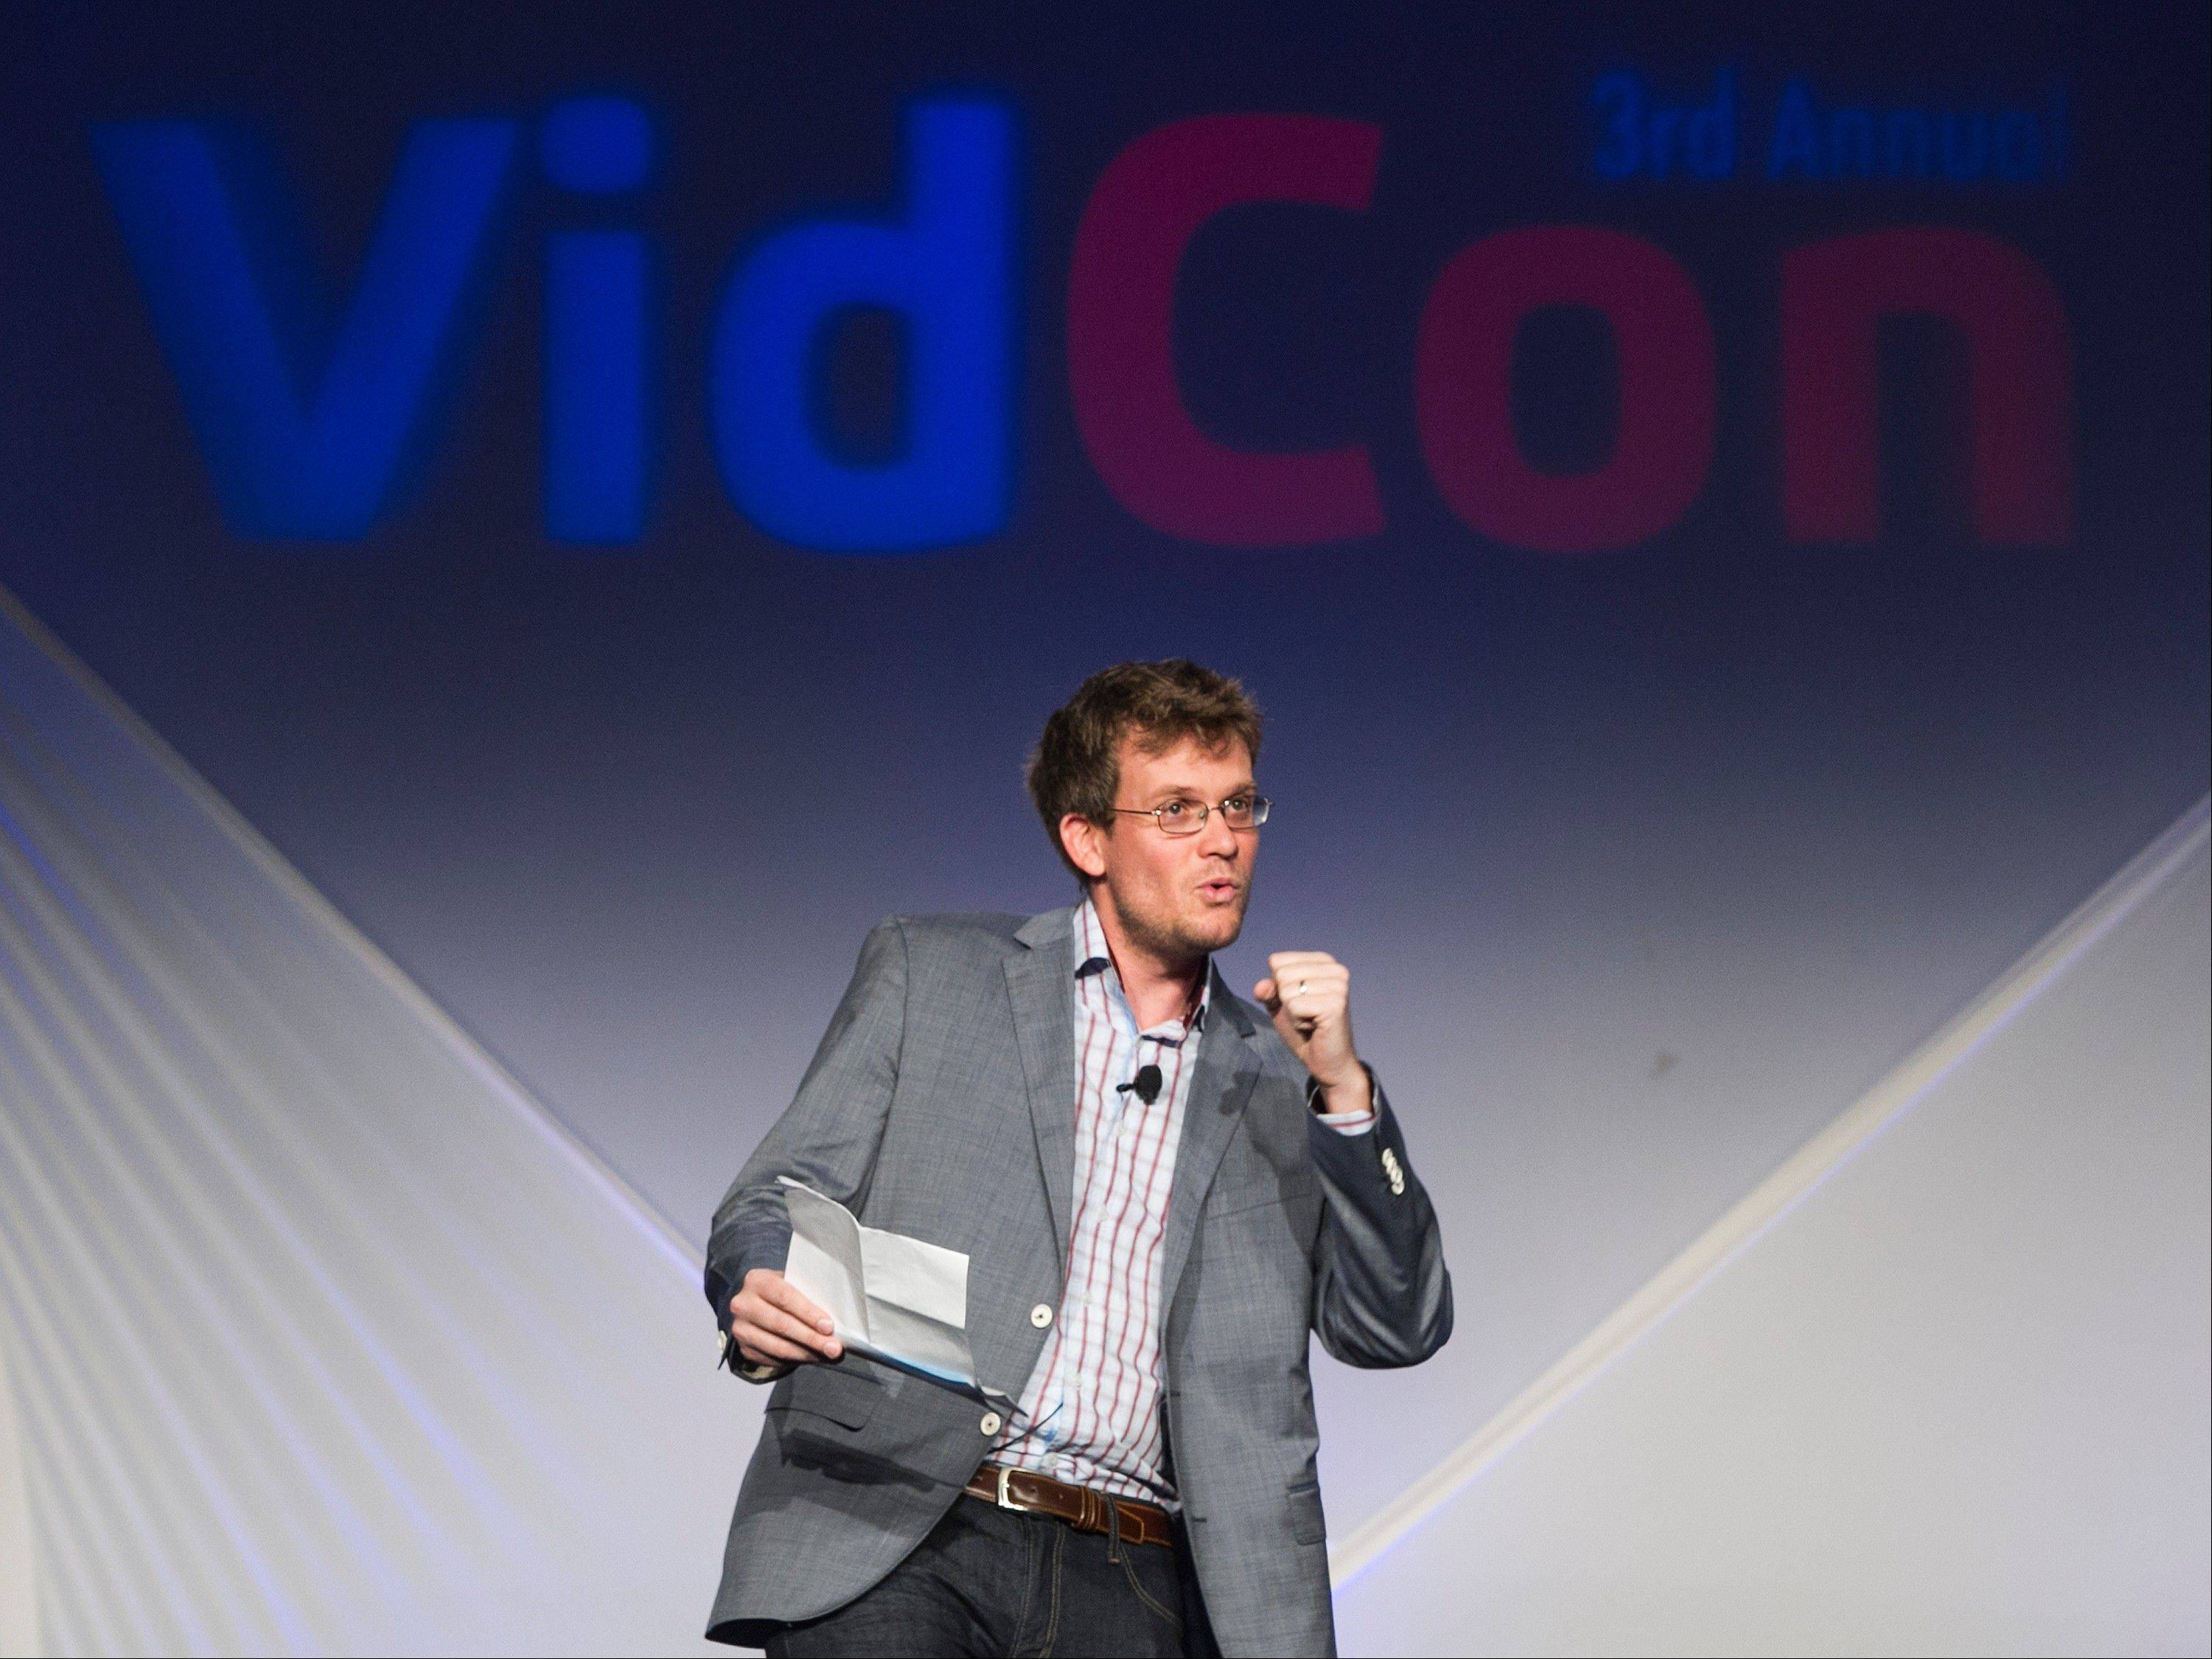 VidCon co-founder, author John Green delivers the opening address for the third annual VidCon conference and community gathering for online video in Anaheim, Calif.